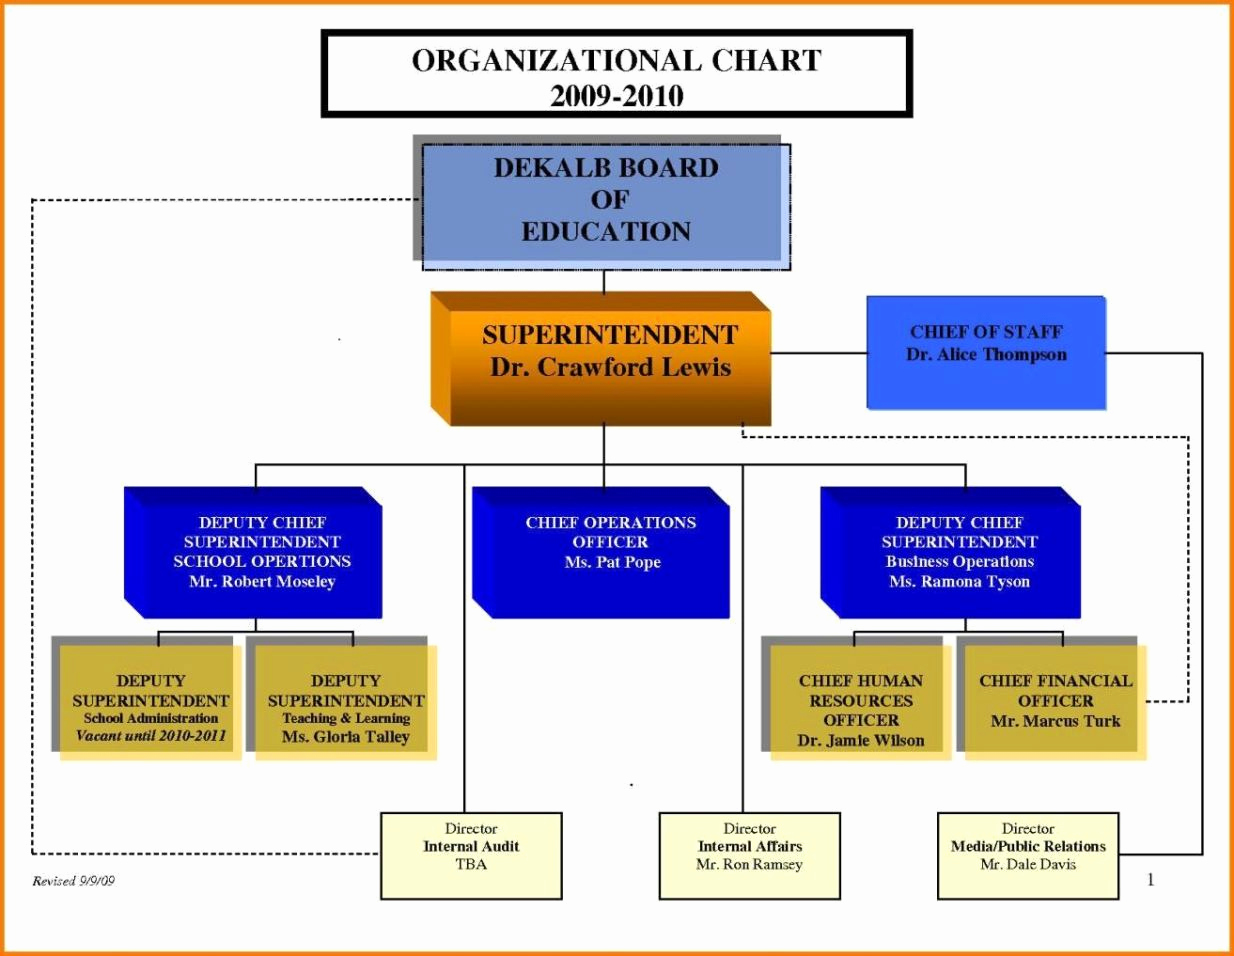 Organizational Chart Template Word Unique Free organizational Chart Template Word 2010